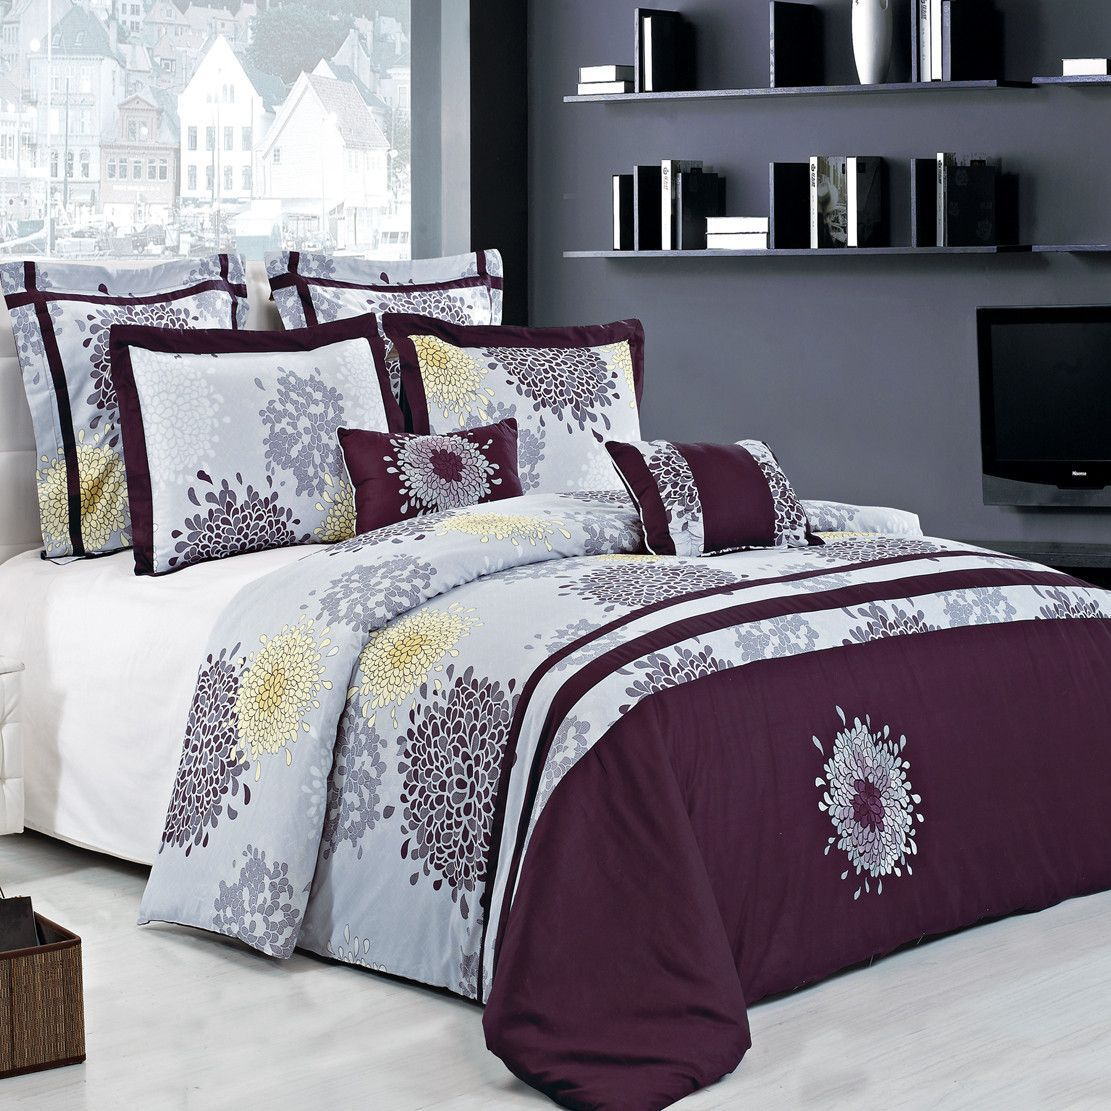 The Fifi Lilac And Plum By Royal Hotel Collection Is A